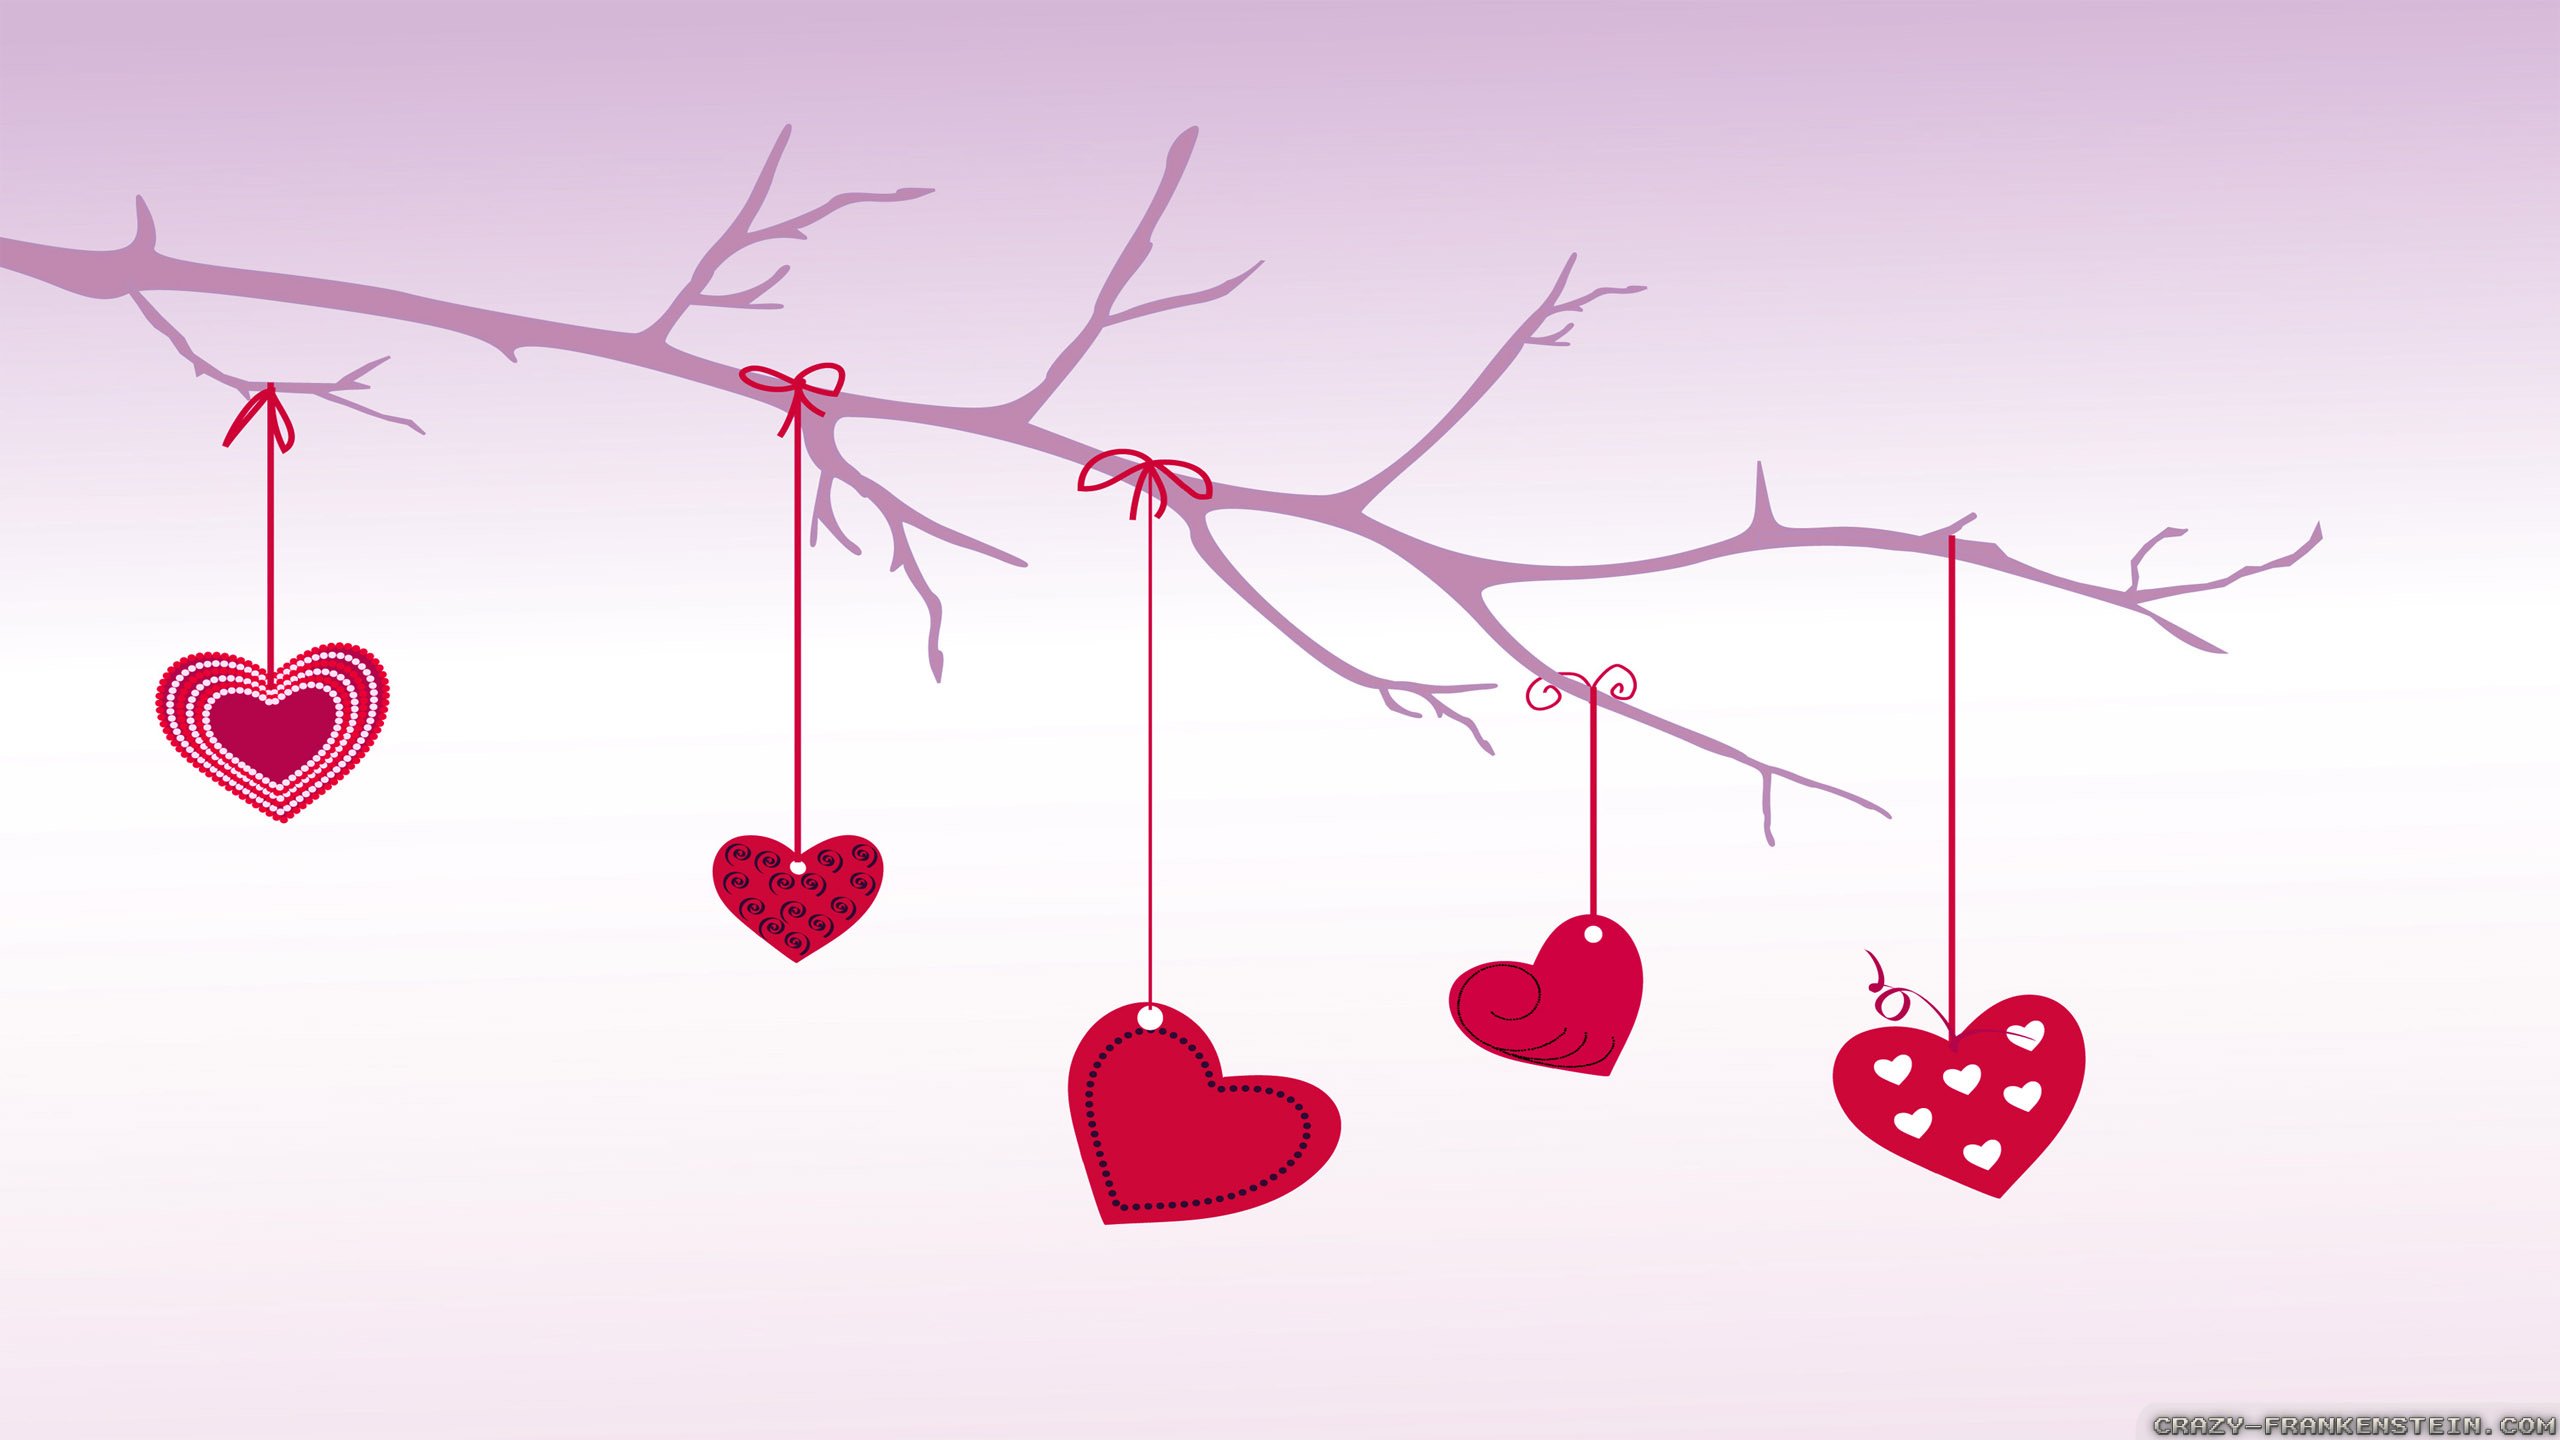 New love tree wallpapers hd download